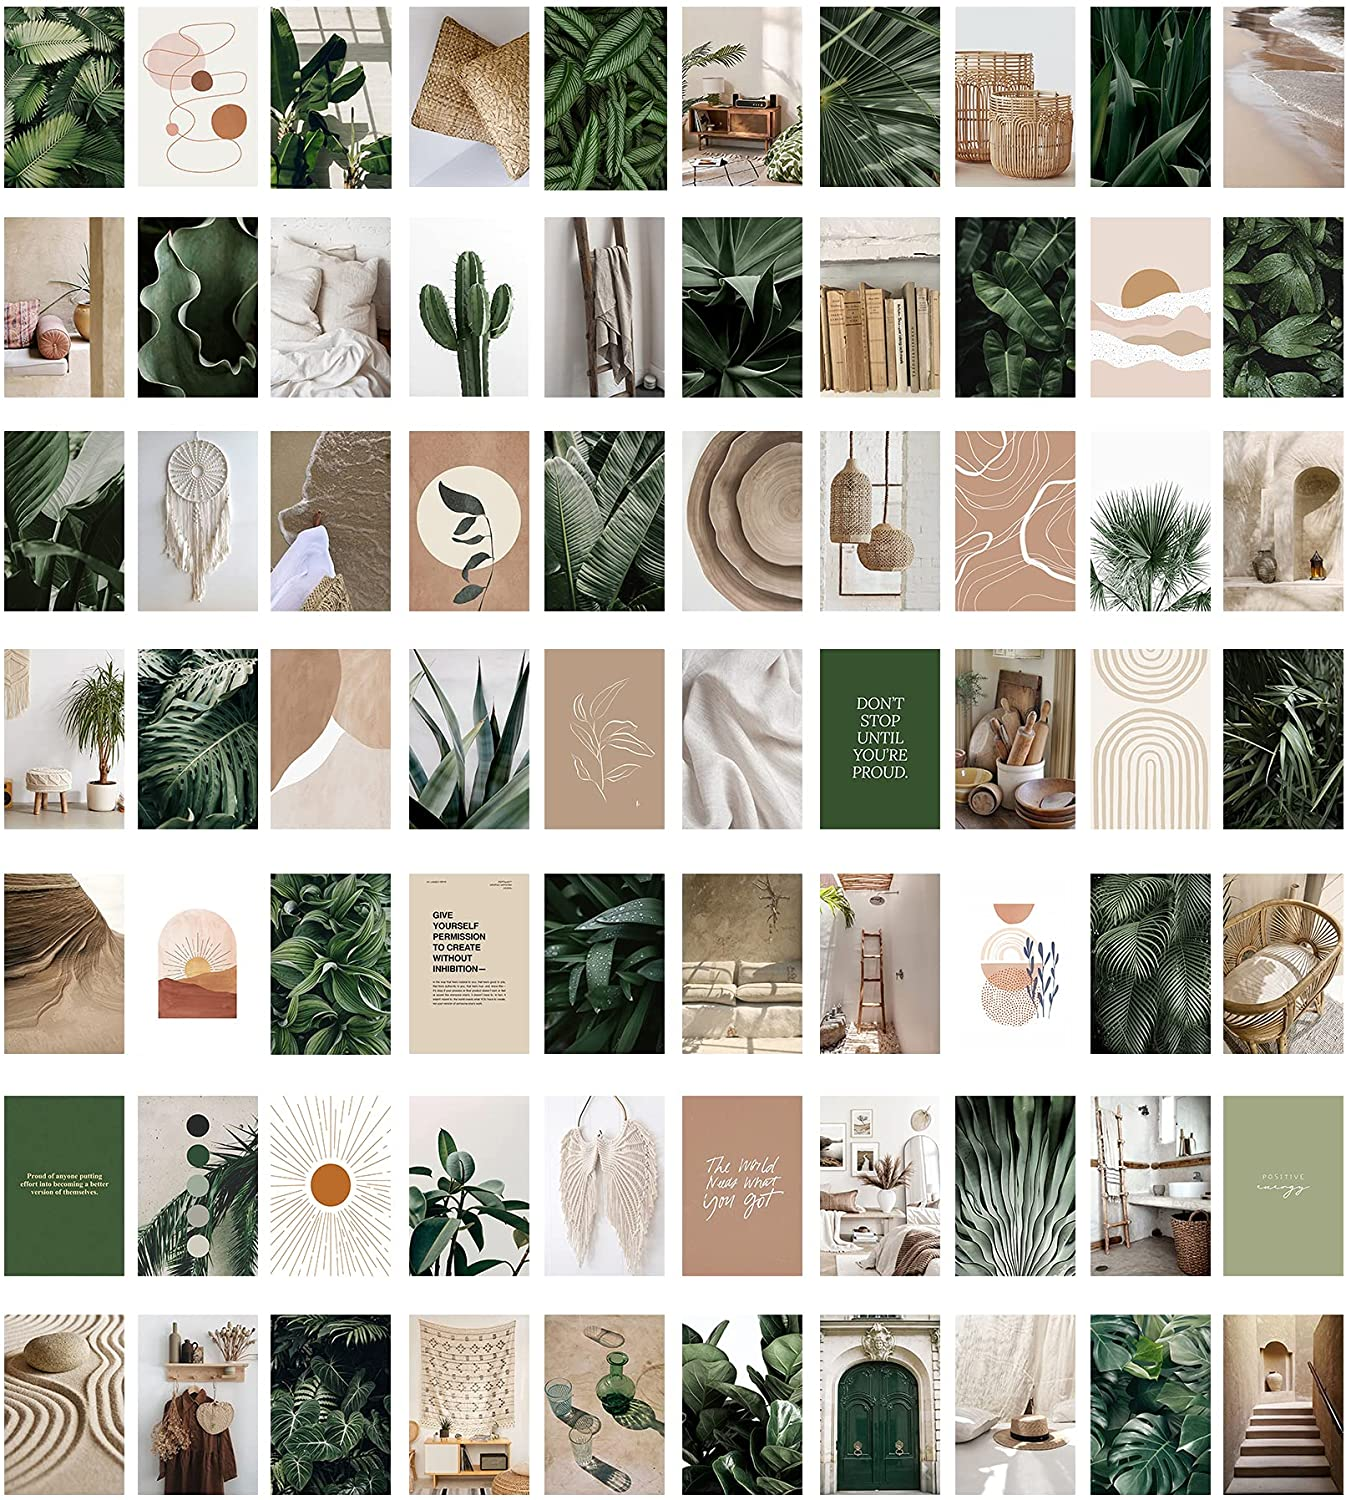 Adzt's 70 Pieces Aesthetic Pictures Wall Collage Kit , Boho Cottagecore Photo Collection Collage VSCO Bedroom Dorm Decor for Girls Teens Boho Plants Living Room Decor